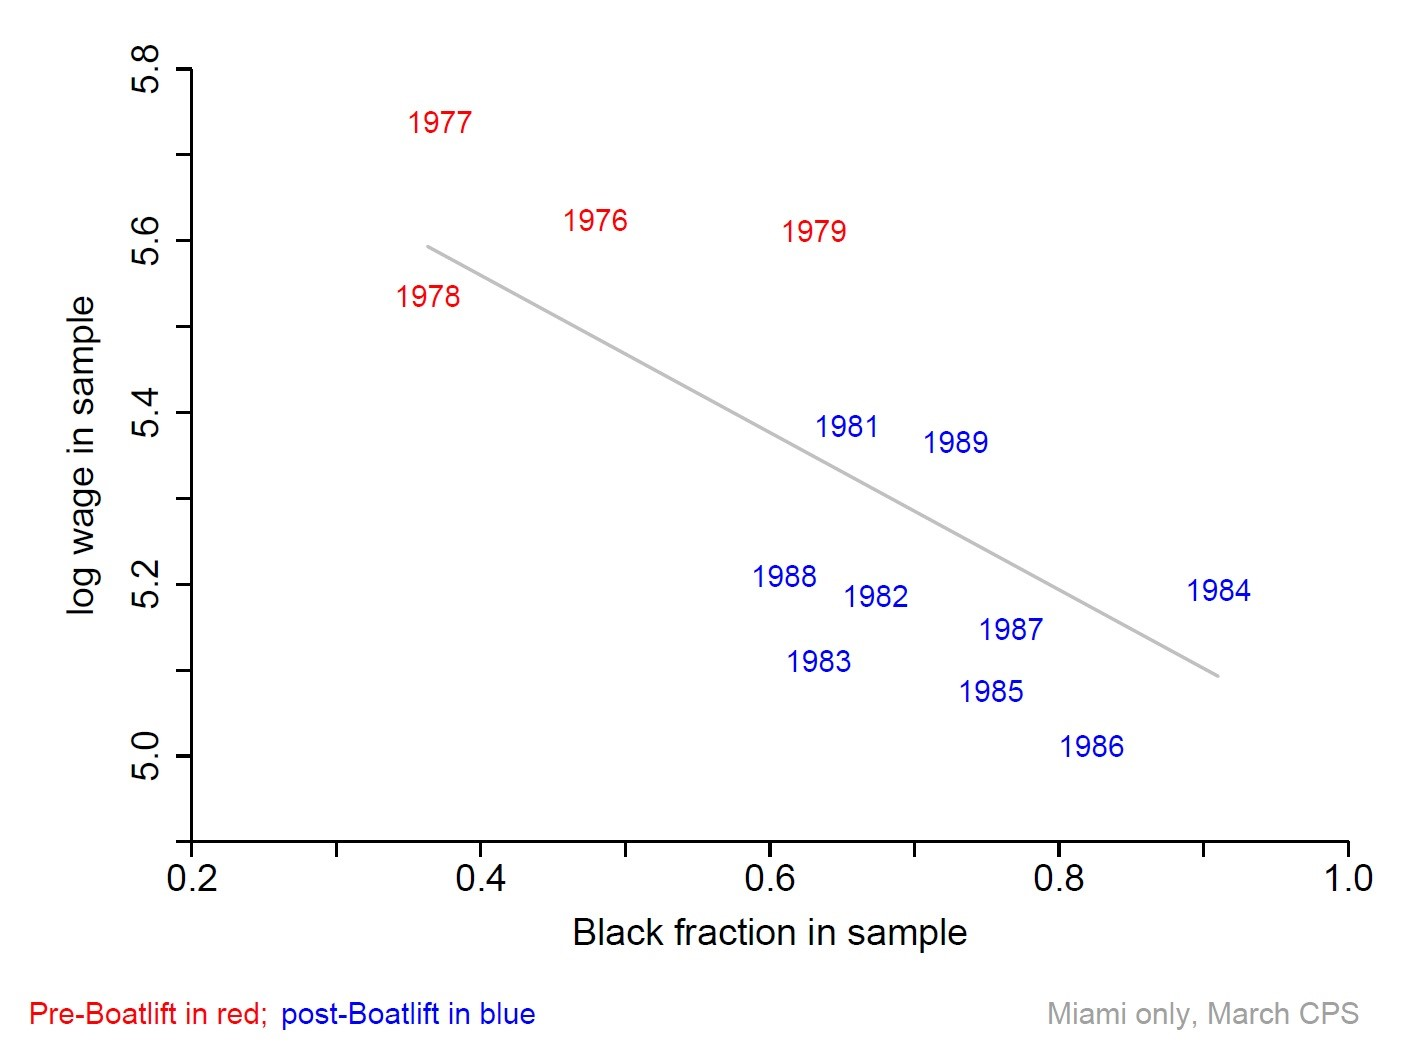 Graph: wages fall as the black fraction of the sample goes up